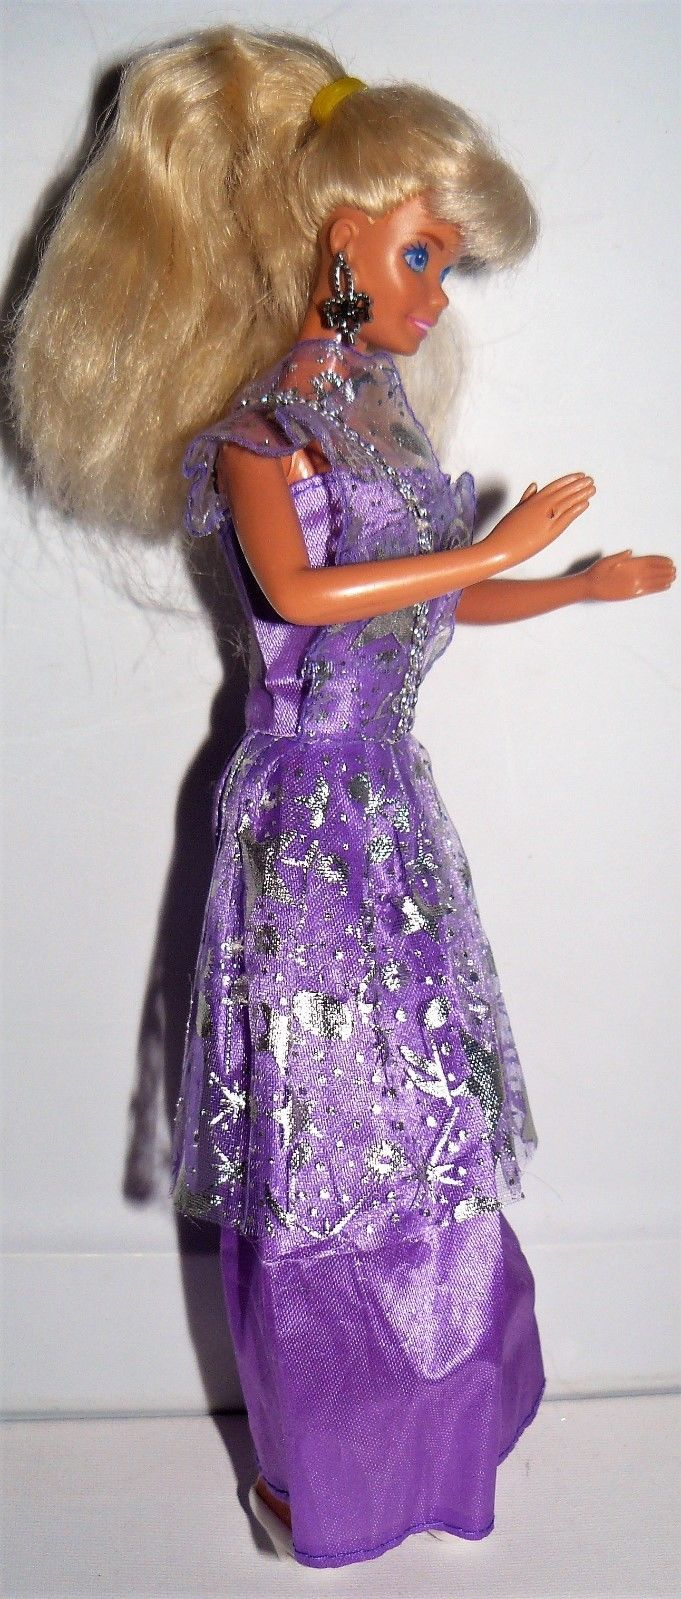 b7df5ad2331c Mattel 1980s Twist N Turn Blond Barbie doll in purple dress white shoes  earring